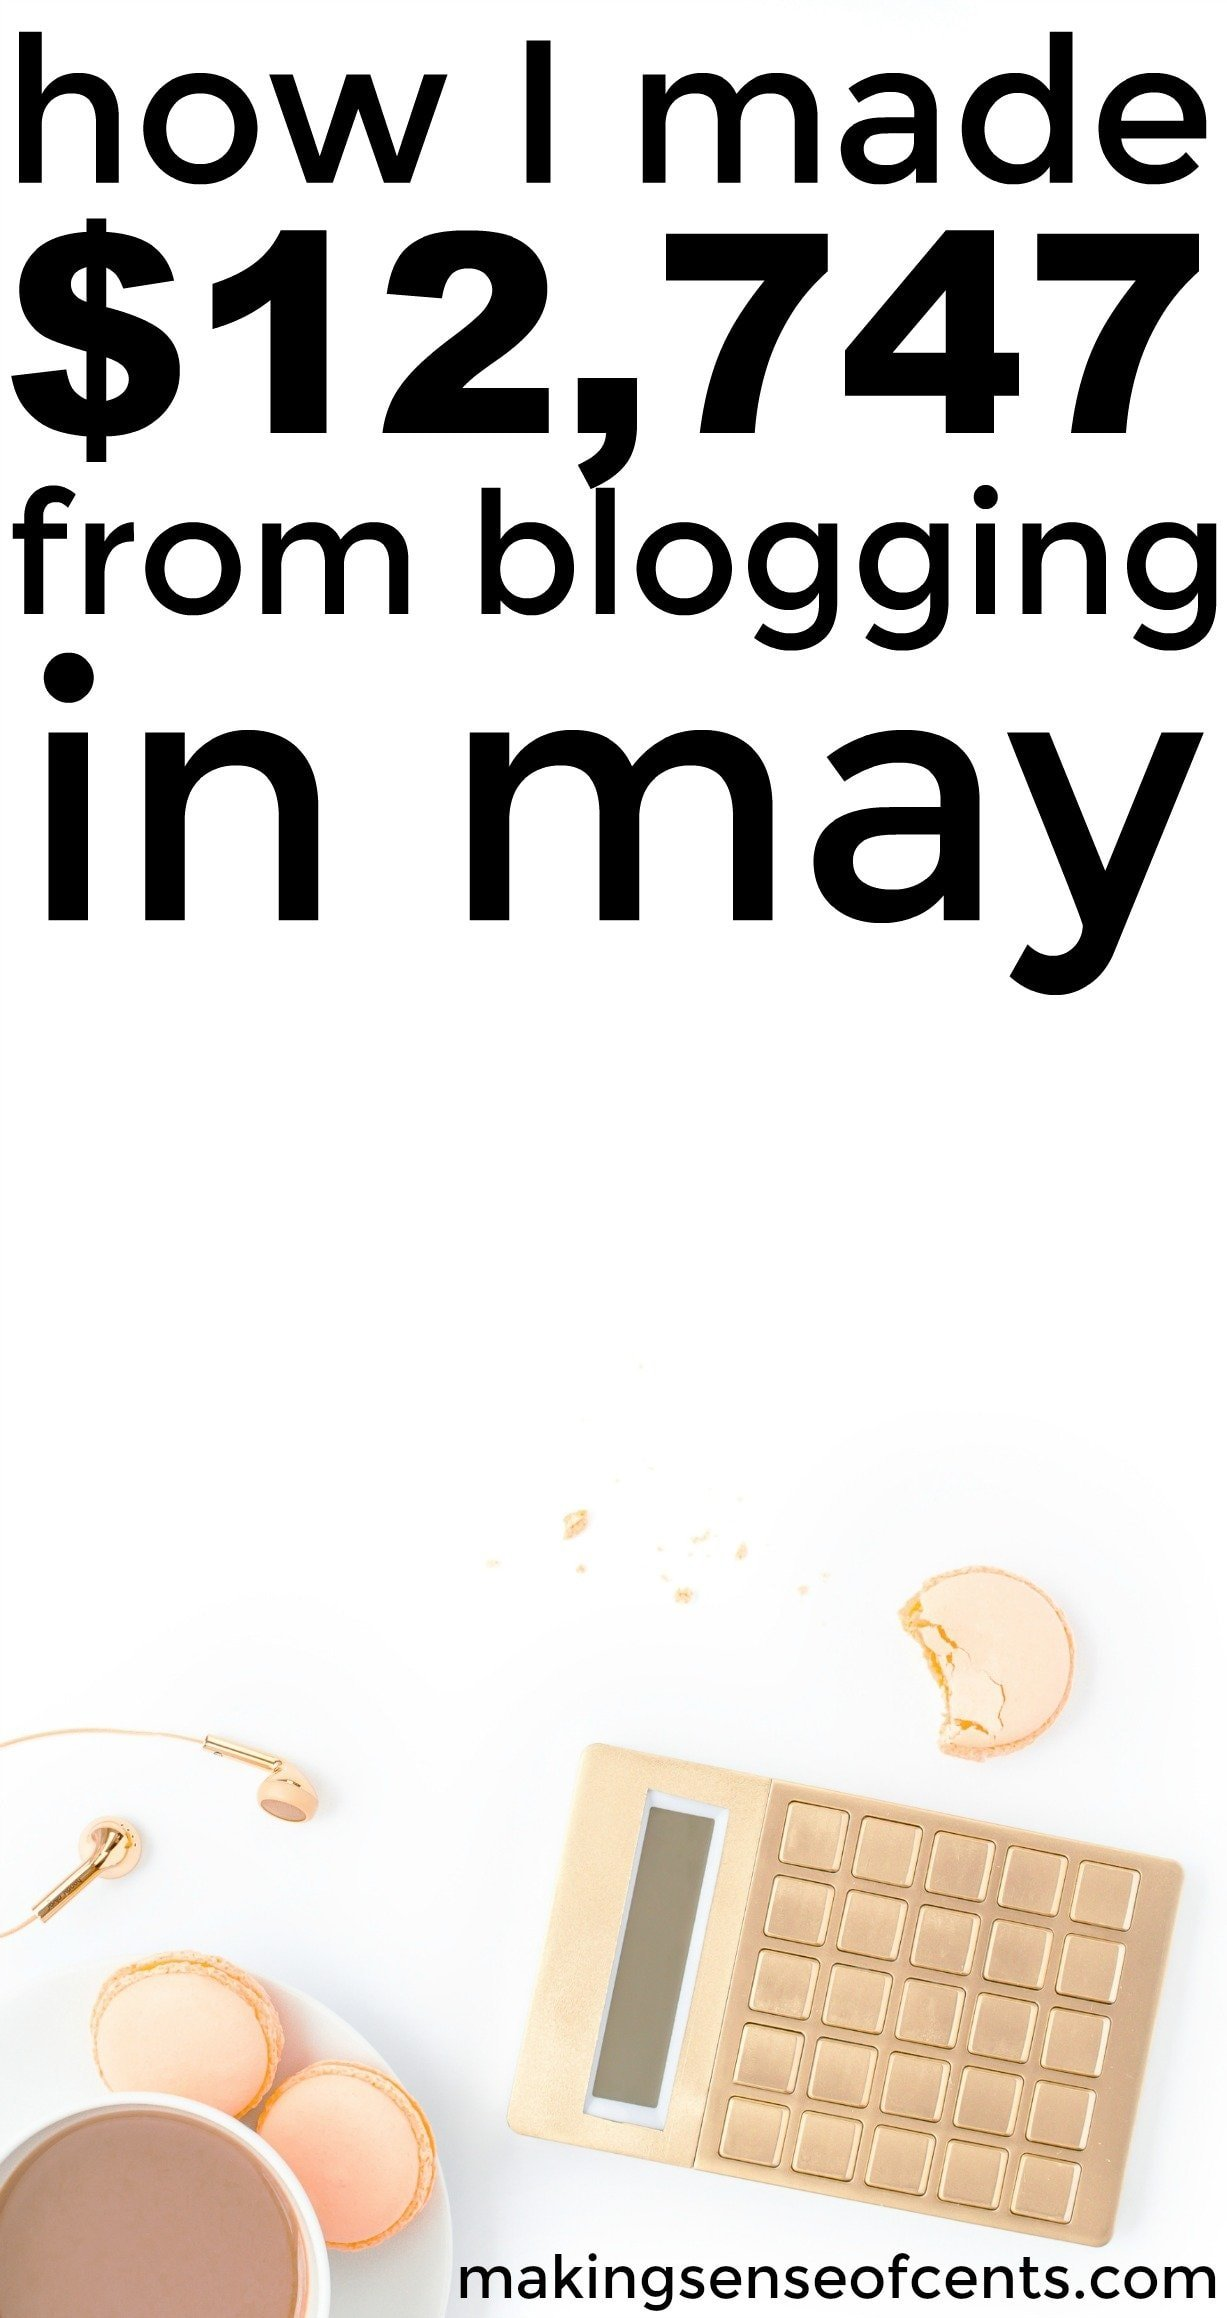 Find out how I made $12,747 from blogging in May.